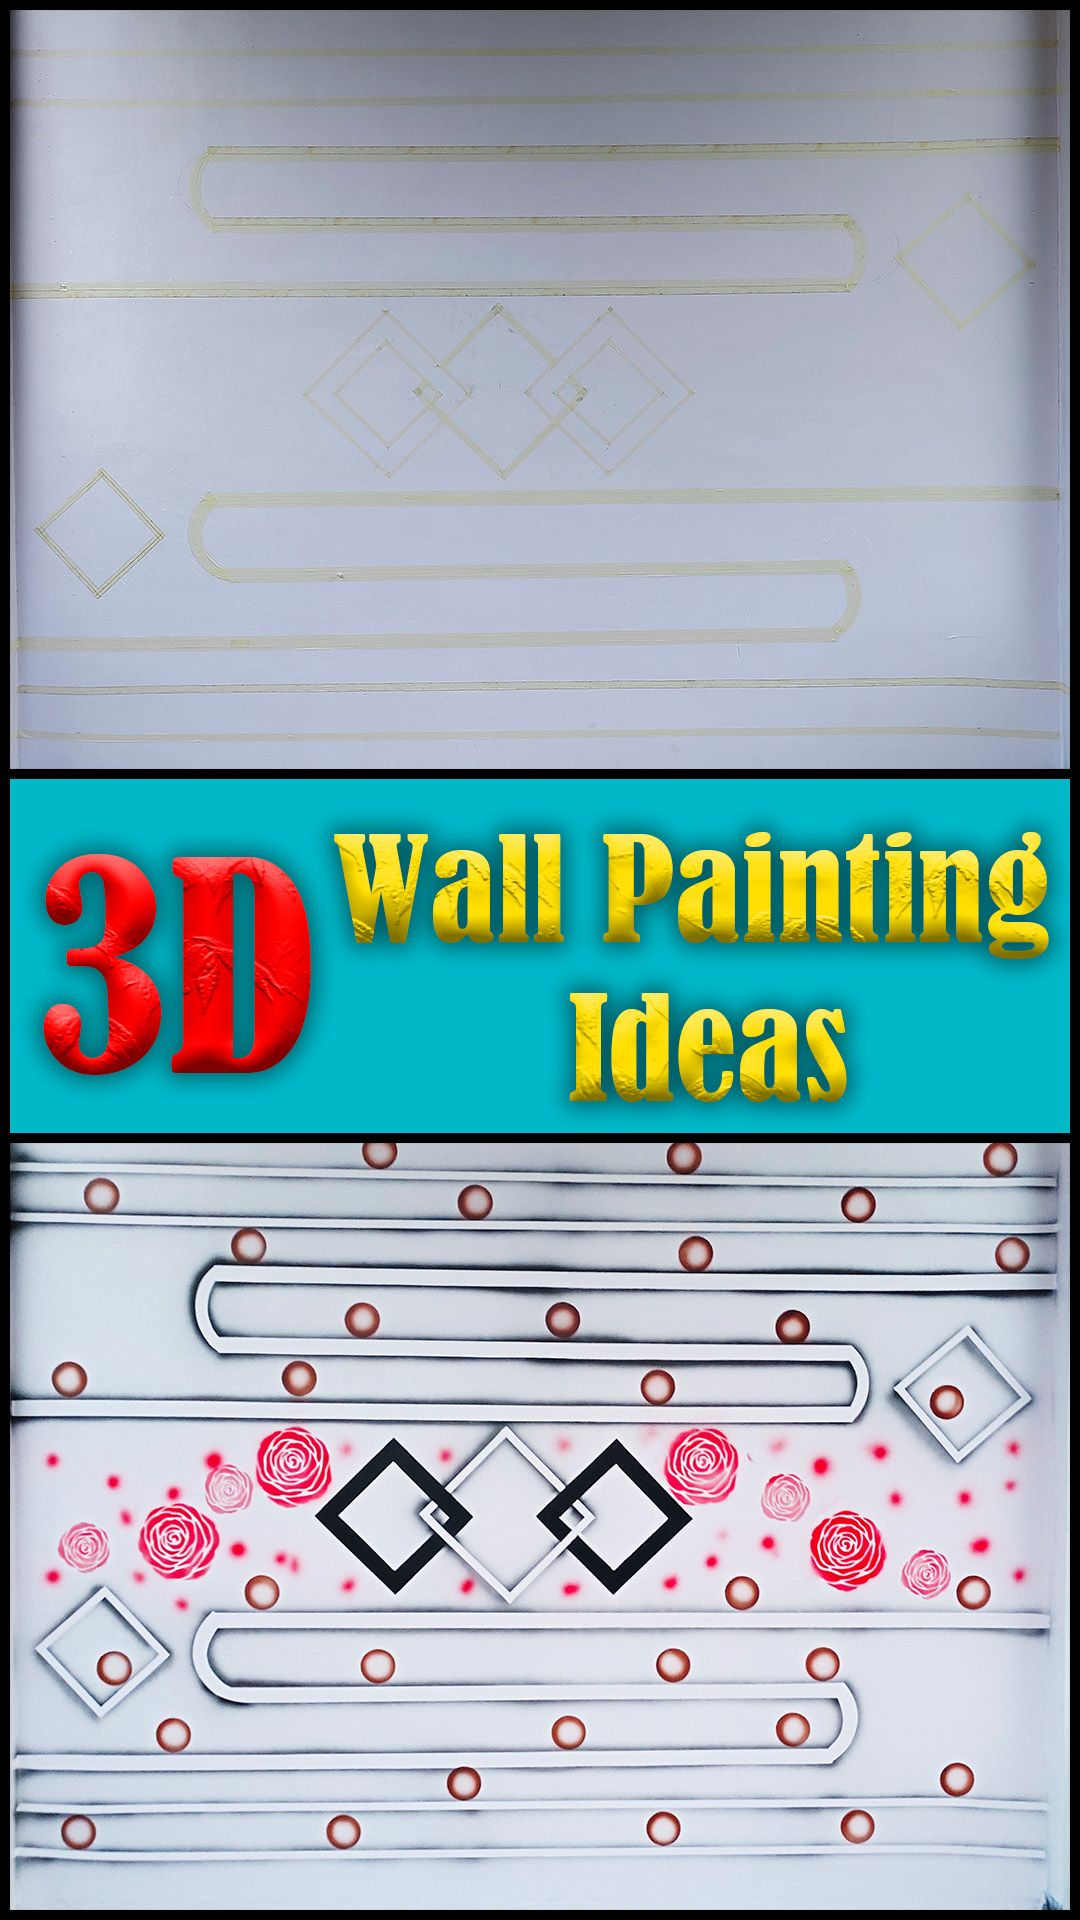 3d Wall Painting Ideas For Interior Design 3d Wall Painting Wall Paint Designs Wall Painting